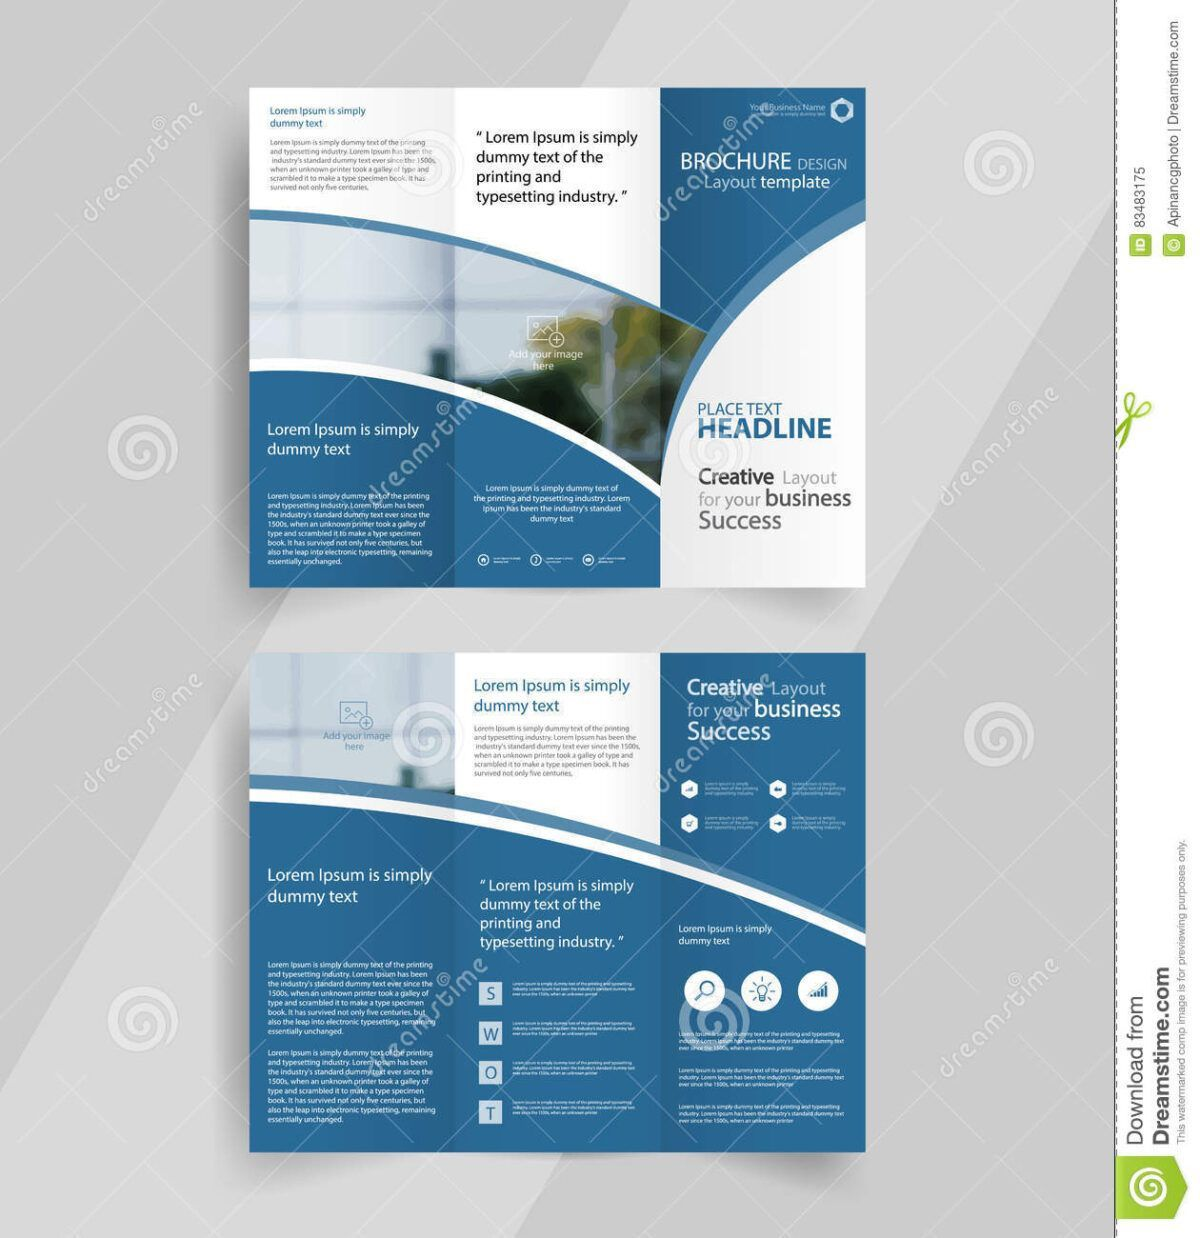 003 Marvelou Brochure Template Microsoft Word Free Tri Fold Concept  Blank For 2010 DownloadFull